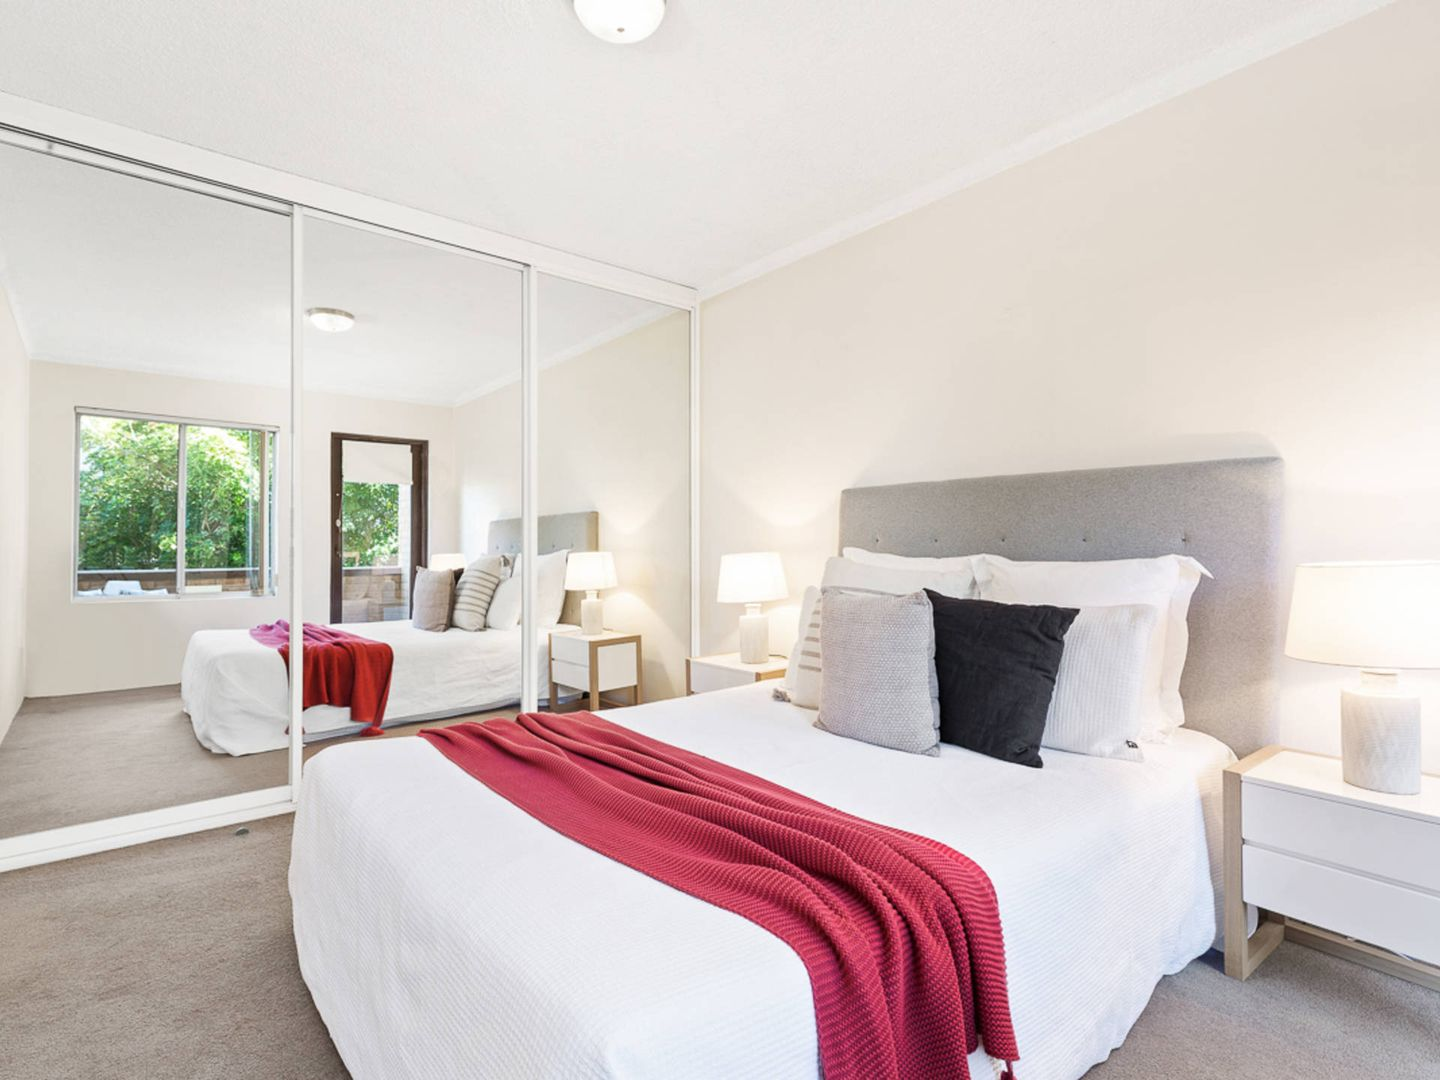 15/166 Mowbray Road, Willoughby NSW 2068, Image 2